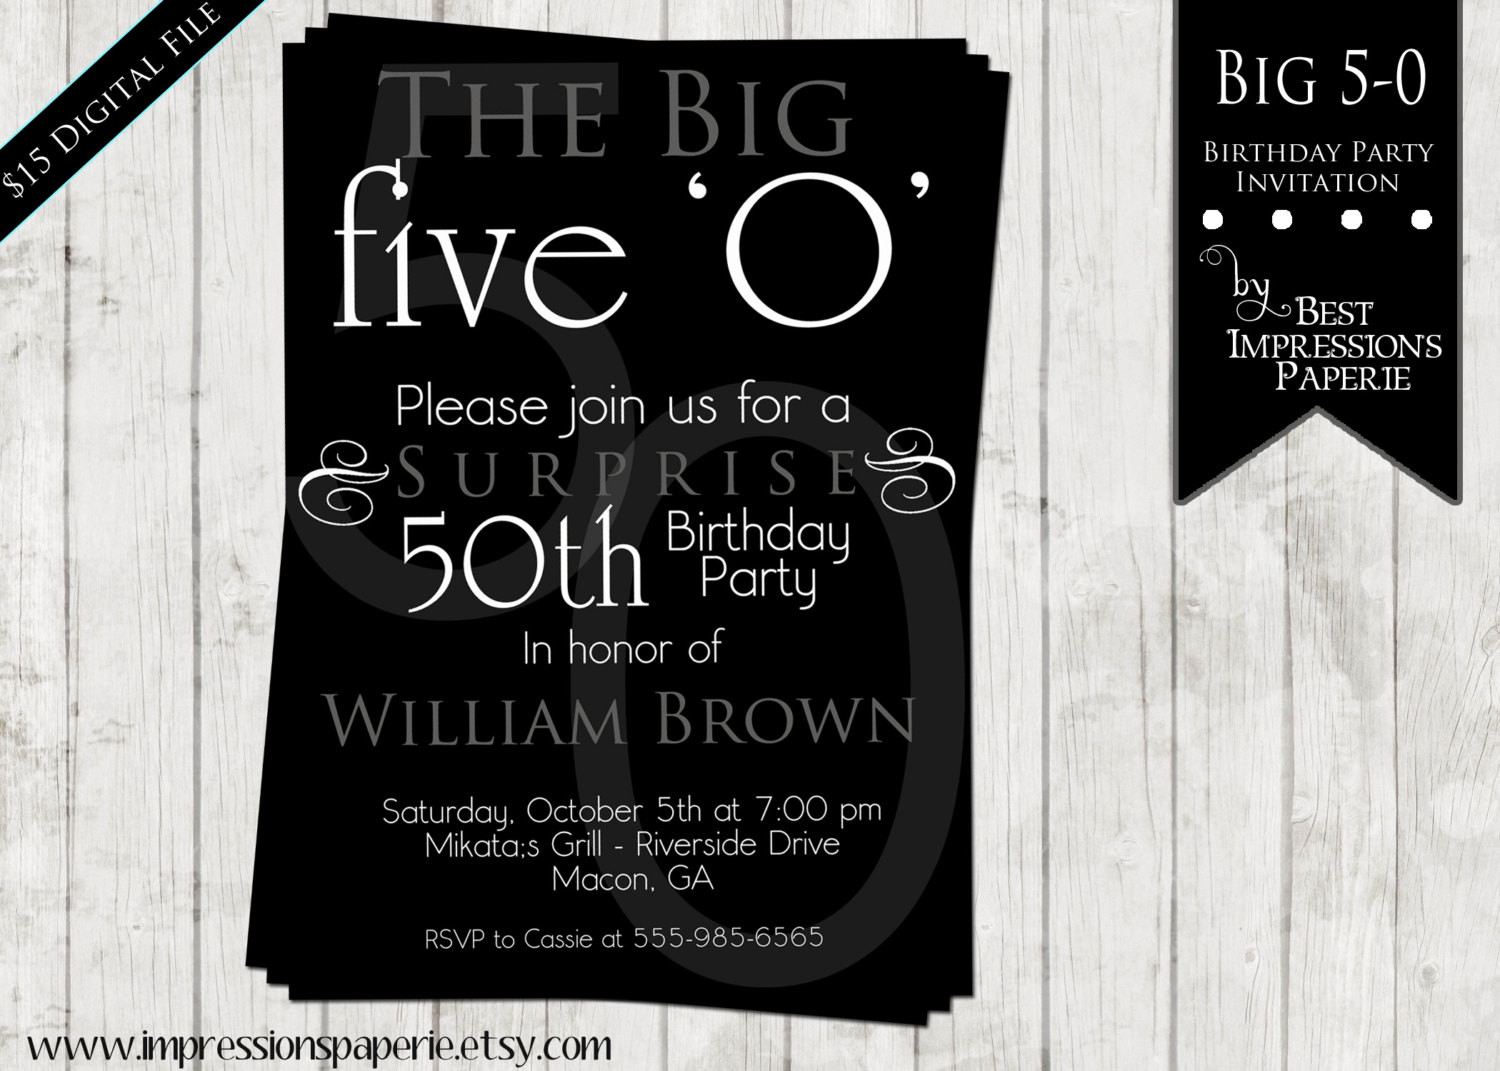 50th Birthday Invitations For Her  50th Birthday Party Invitations For Men